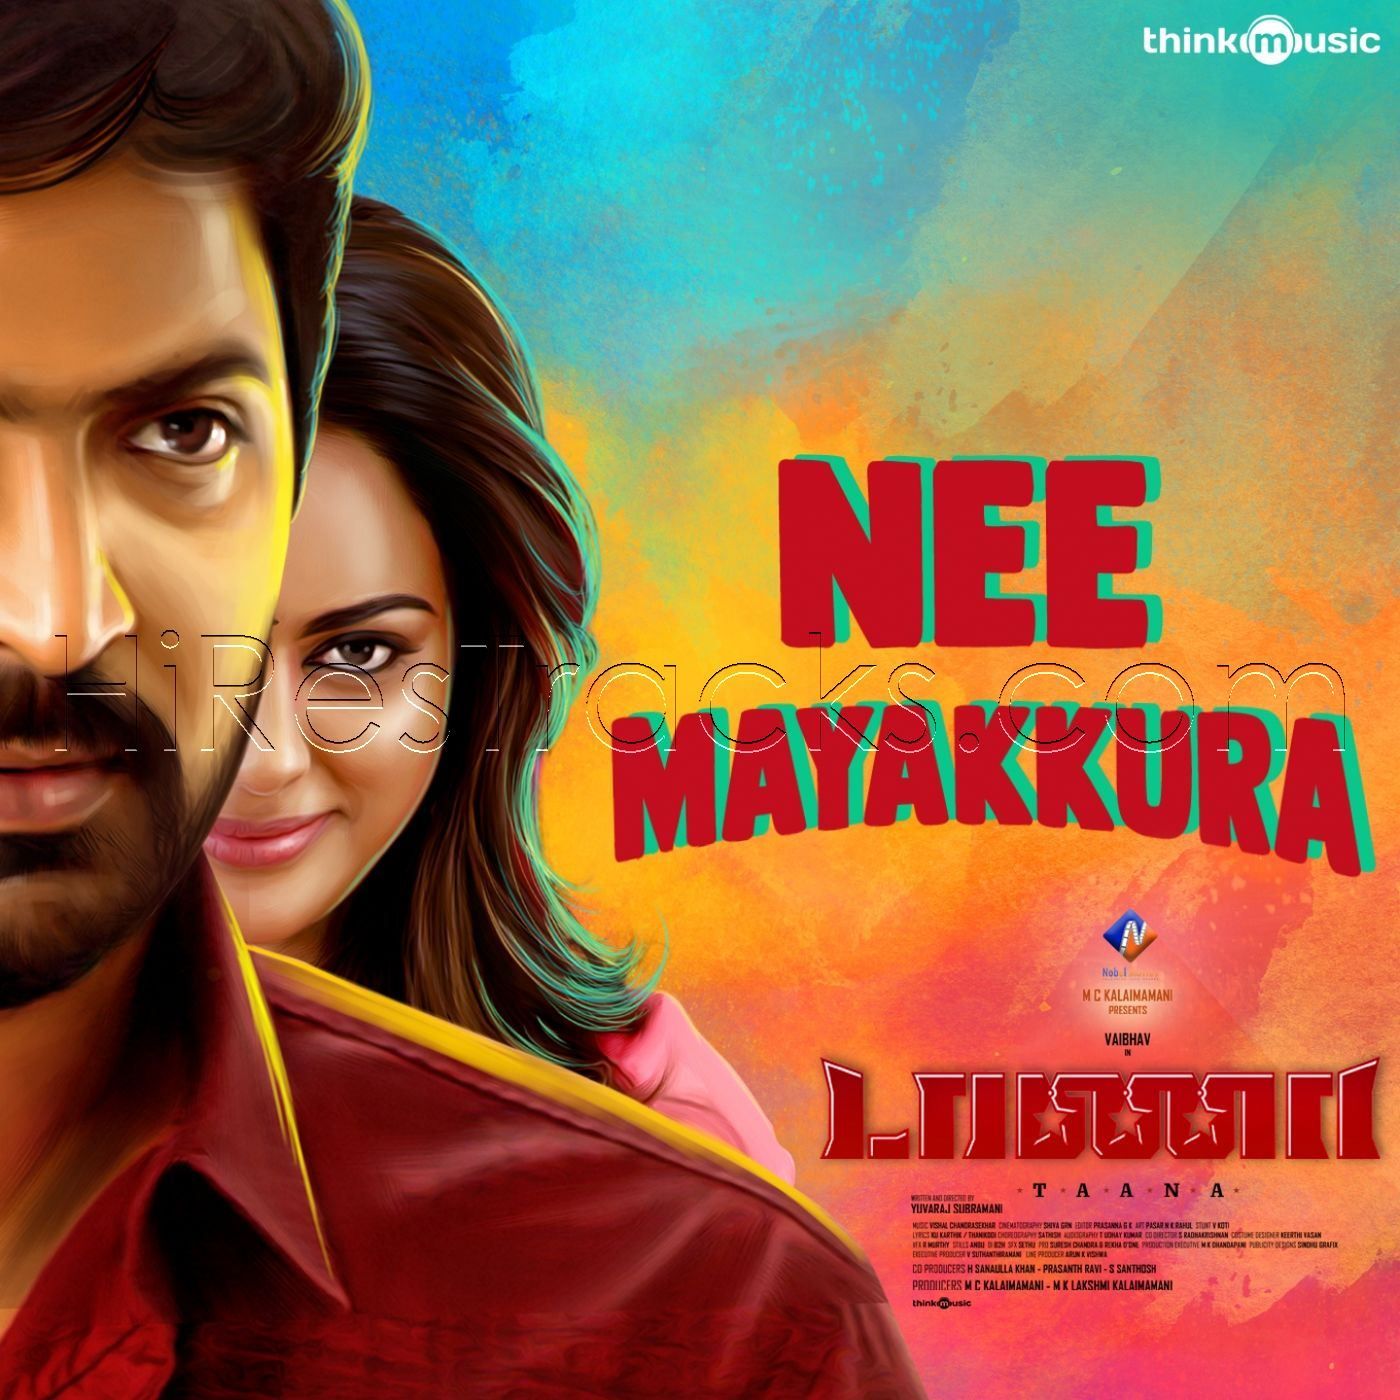 Nee Mayakkura (From Taana) (2019) (Vishal Chandrashekar) (Think Music) [Digital-RIP-FLAC]